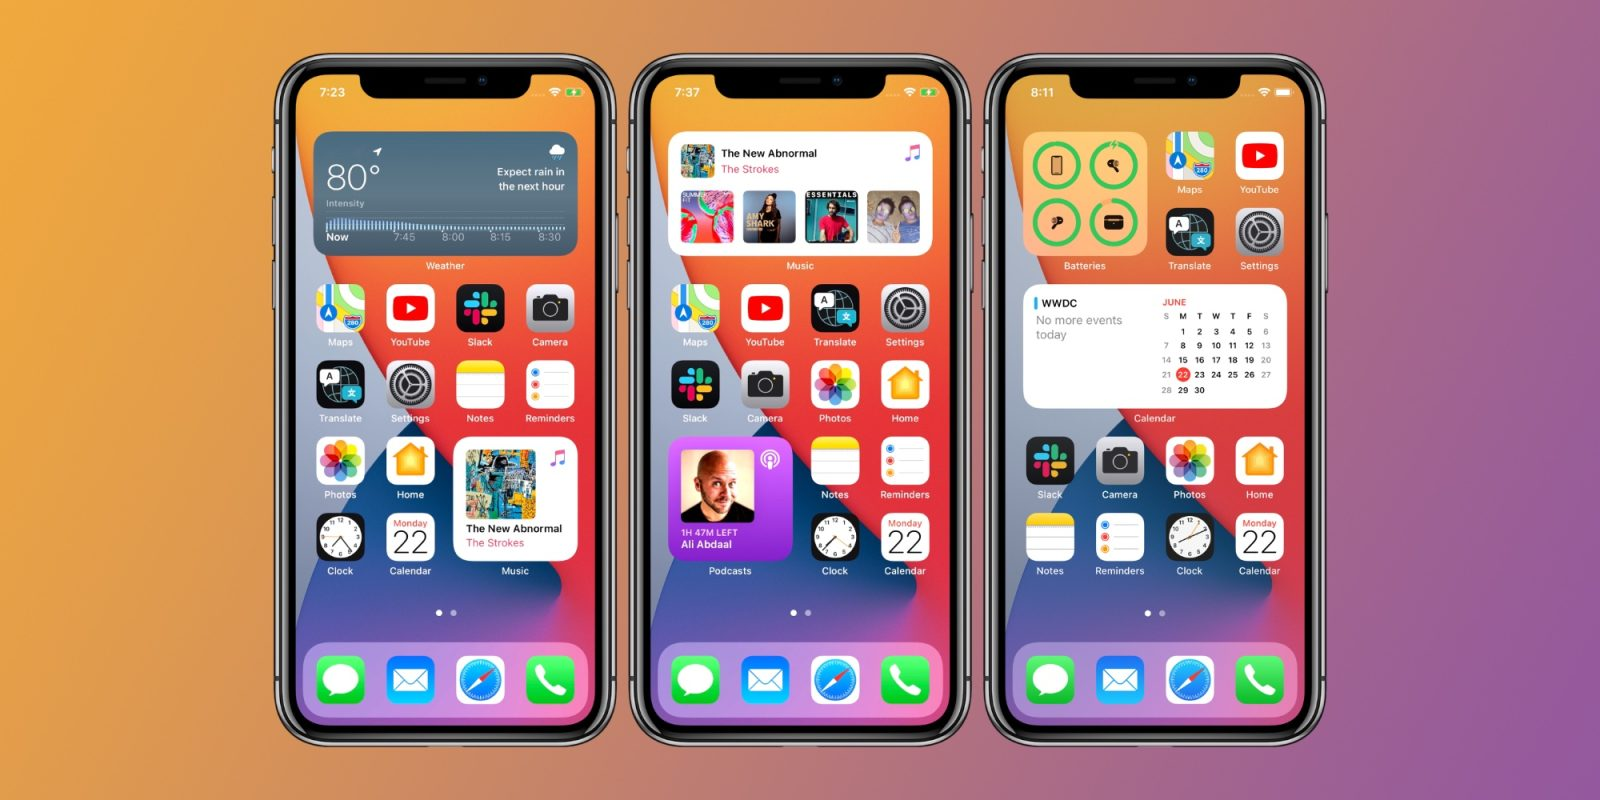 apple ios 14, <b> Apple&#8217;s iOS 14 reveal is giving us major Android vibes </b>